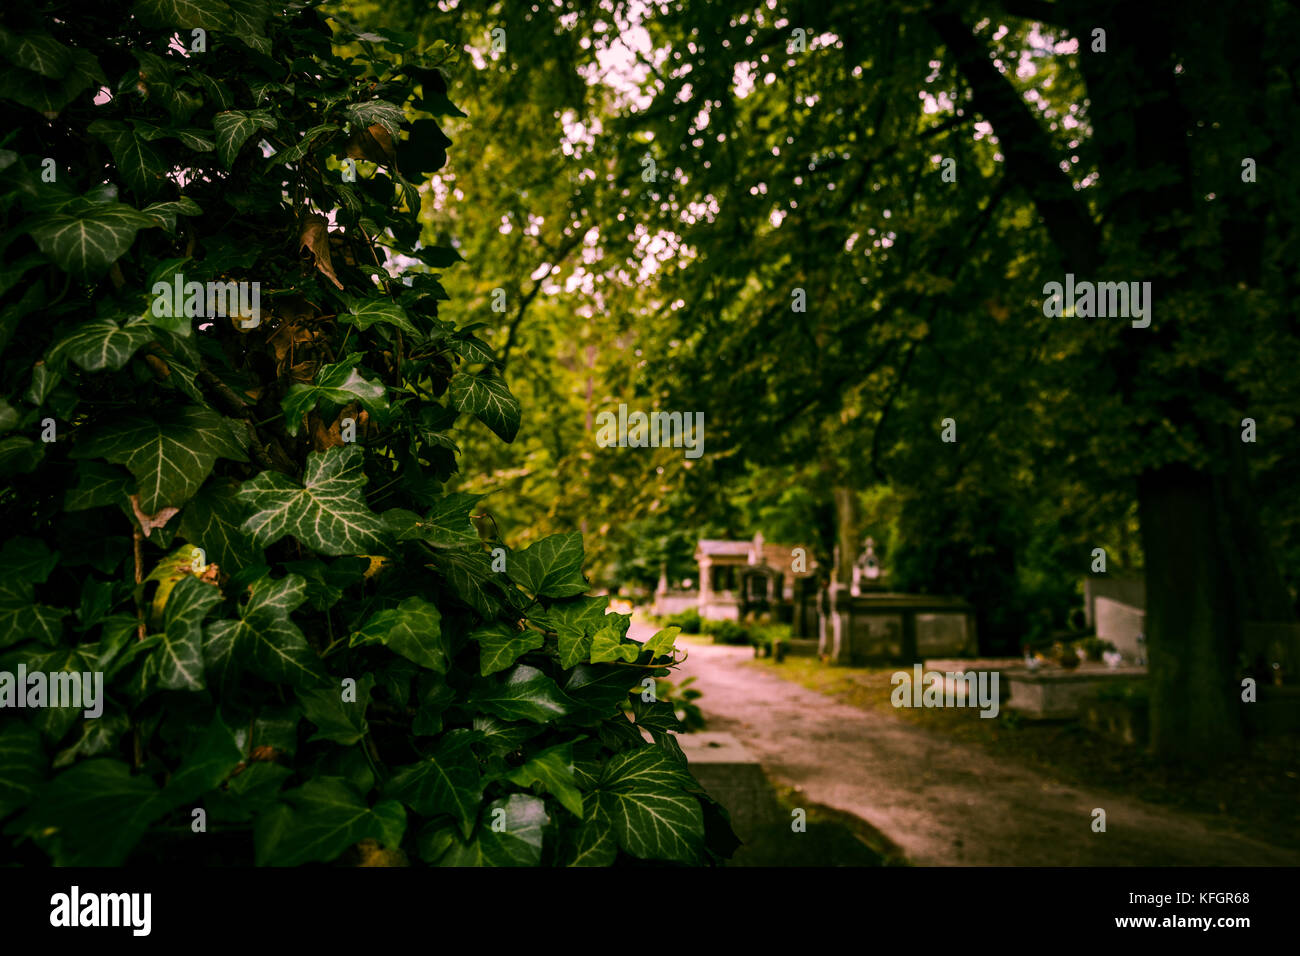 Ivy in the middle of the cemetery. - Stock Image